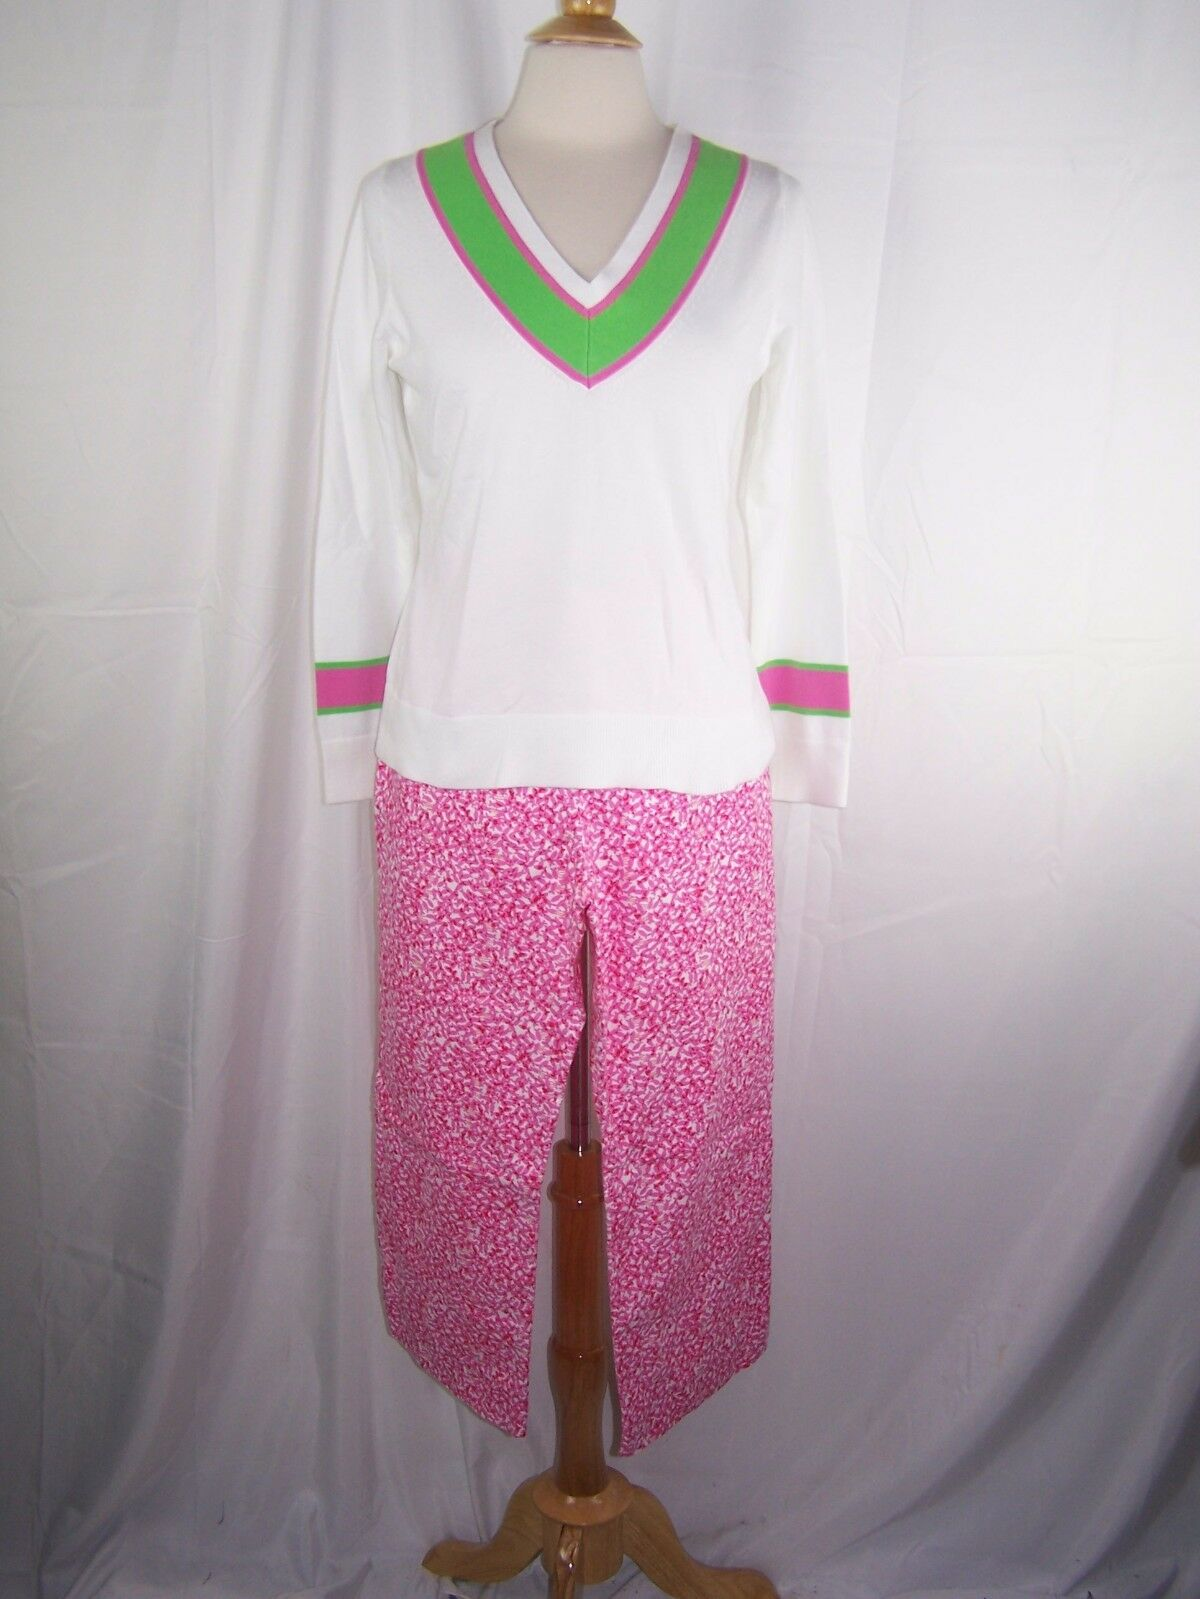 Lot of 2 Lilly Pulitzer Palm Beach fit Pink White Green pants Shirt 12 Large